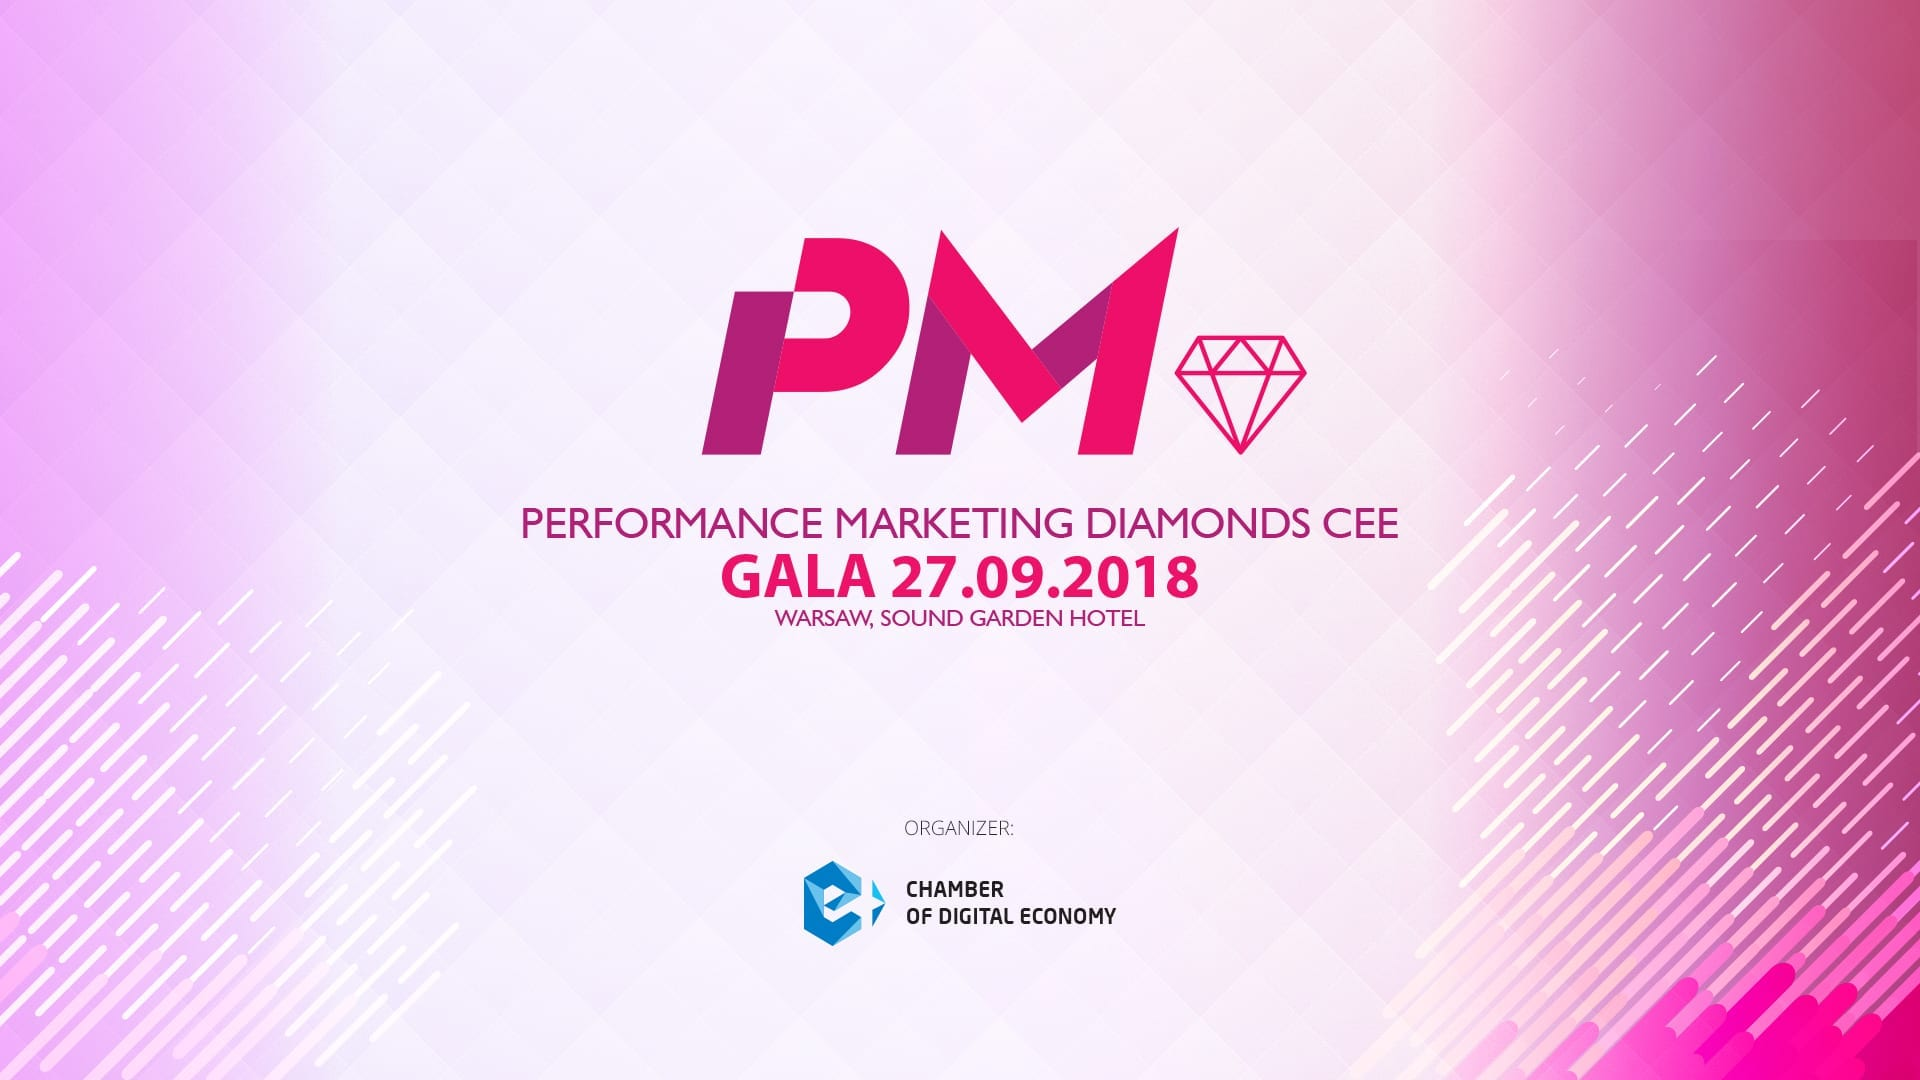 LAUREACI KONKURSU PERFORMANCE MARKETING DIAMONDS CEE 2018